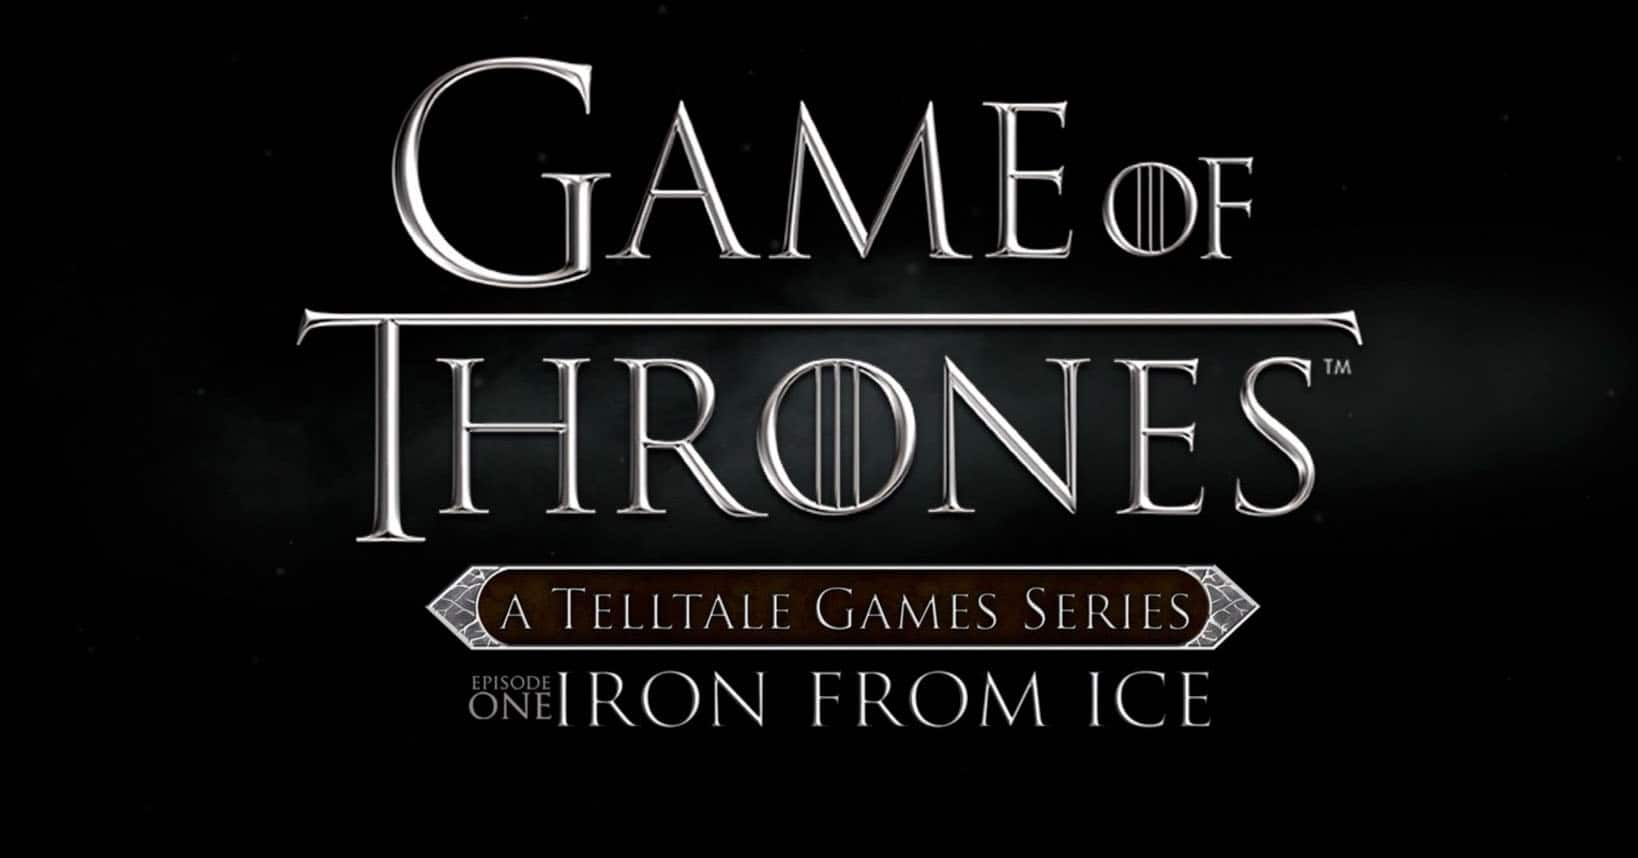 Game of Thrones Episode 1 - Xbox One - FREE in Xbox Store